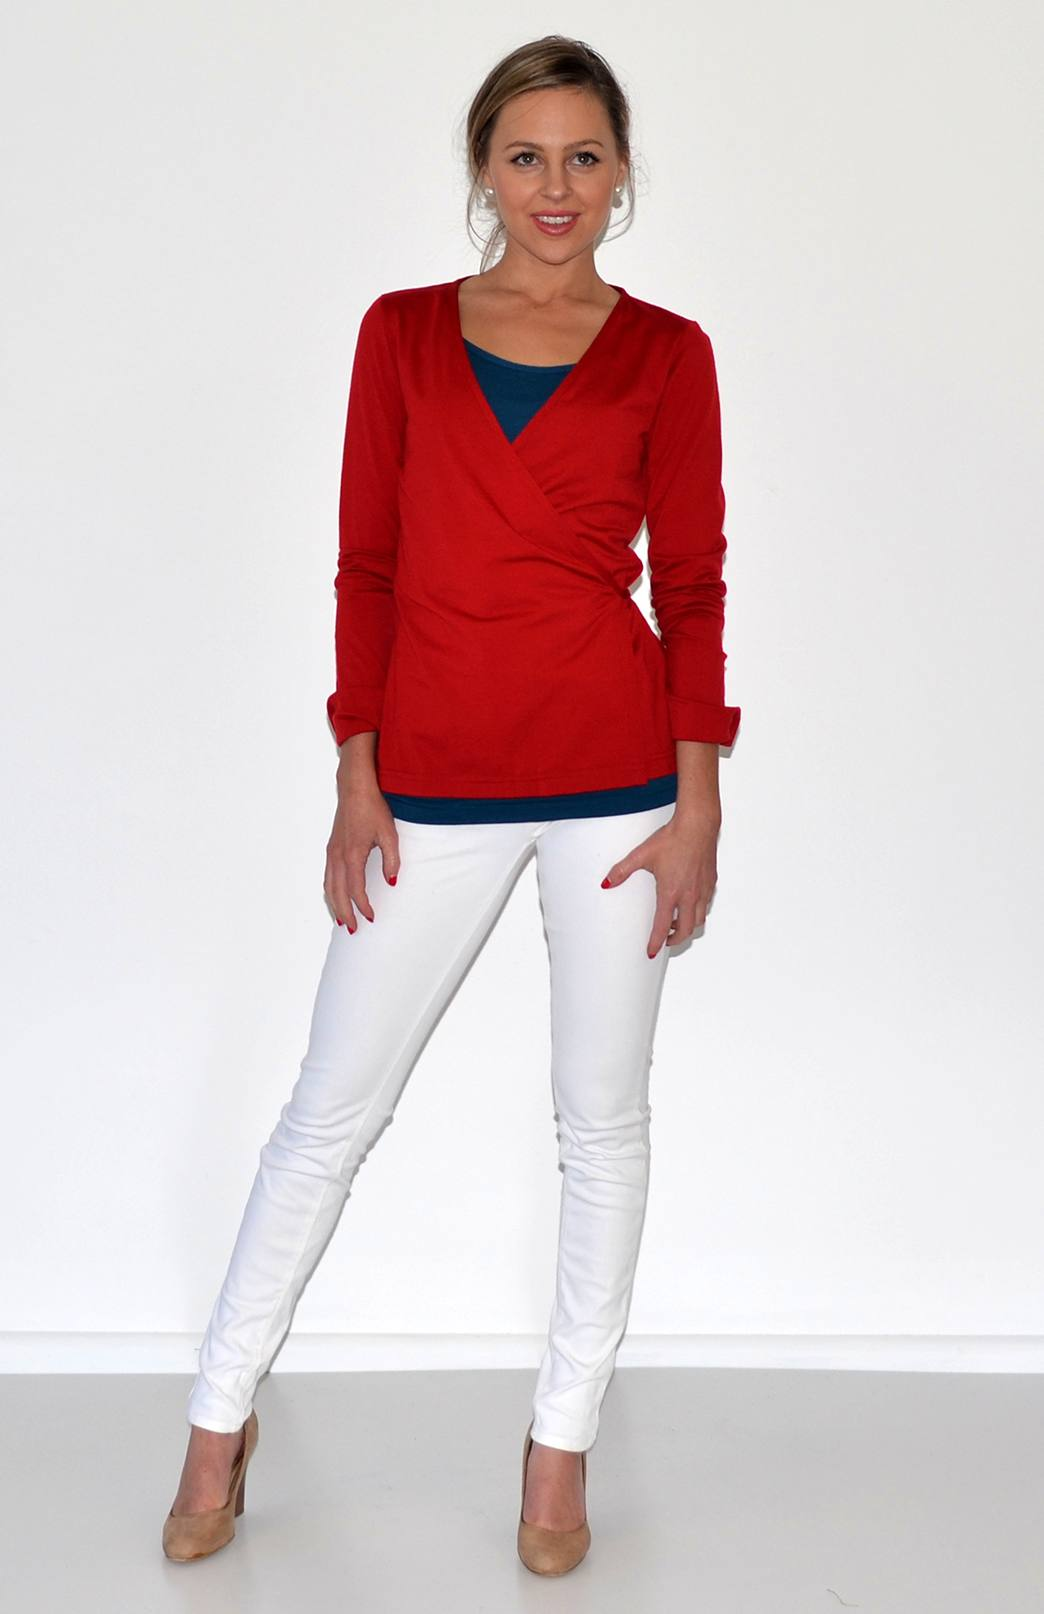 Wrap Top - Women's Flame Red Long Sleeved Wrap Top with Ties - Smitten Merino Tasmania Australia